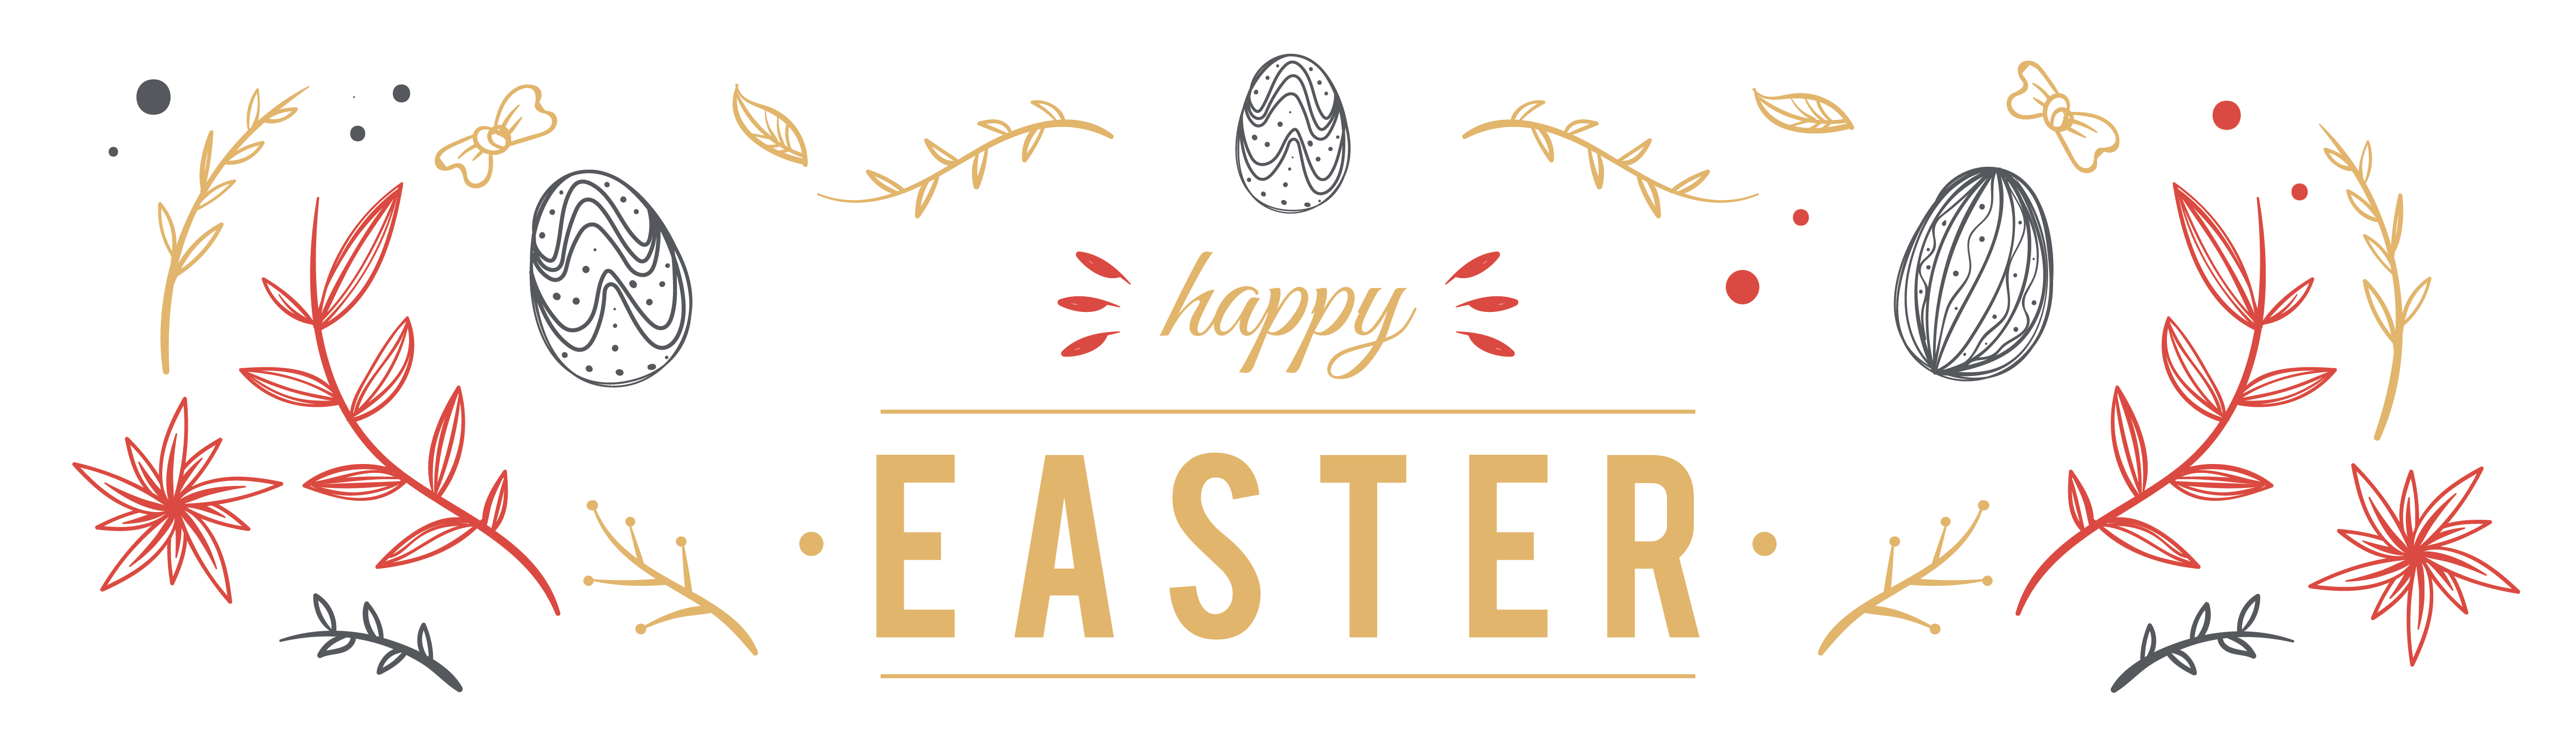 Happy Easter Dura Villas Bali